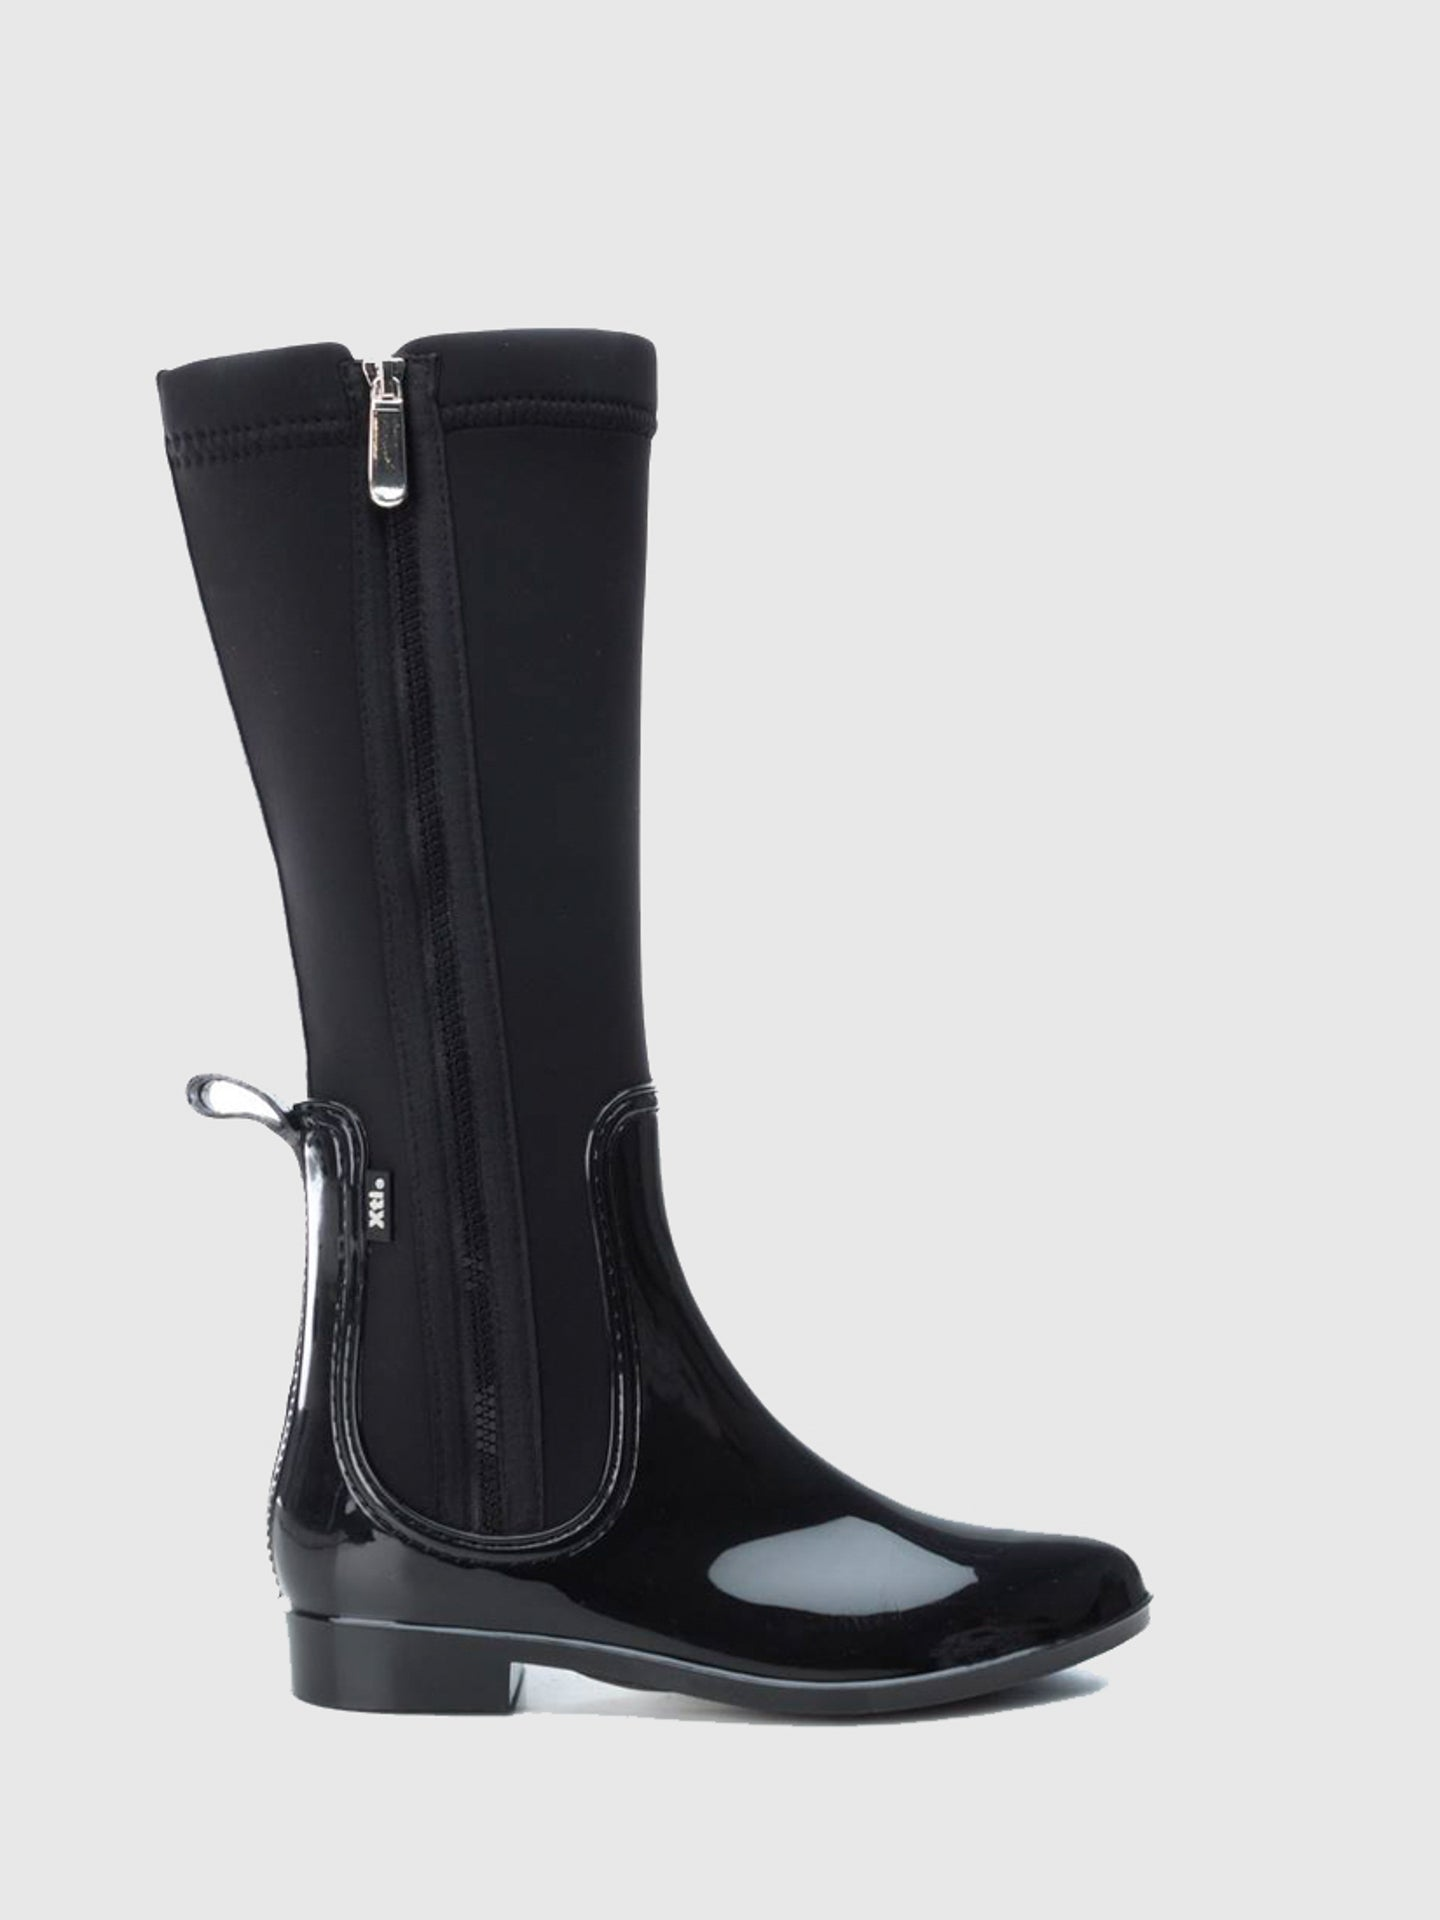 XTI Black Zip Up Boots